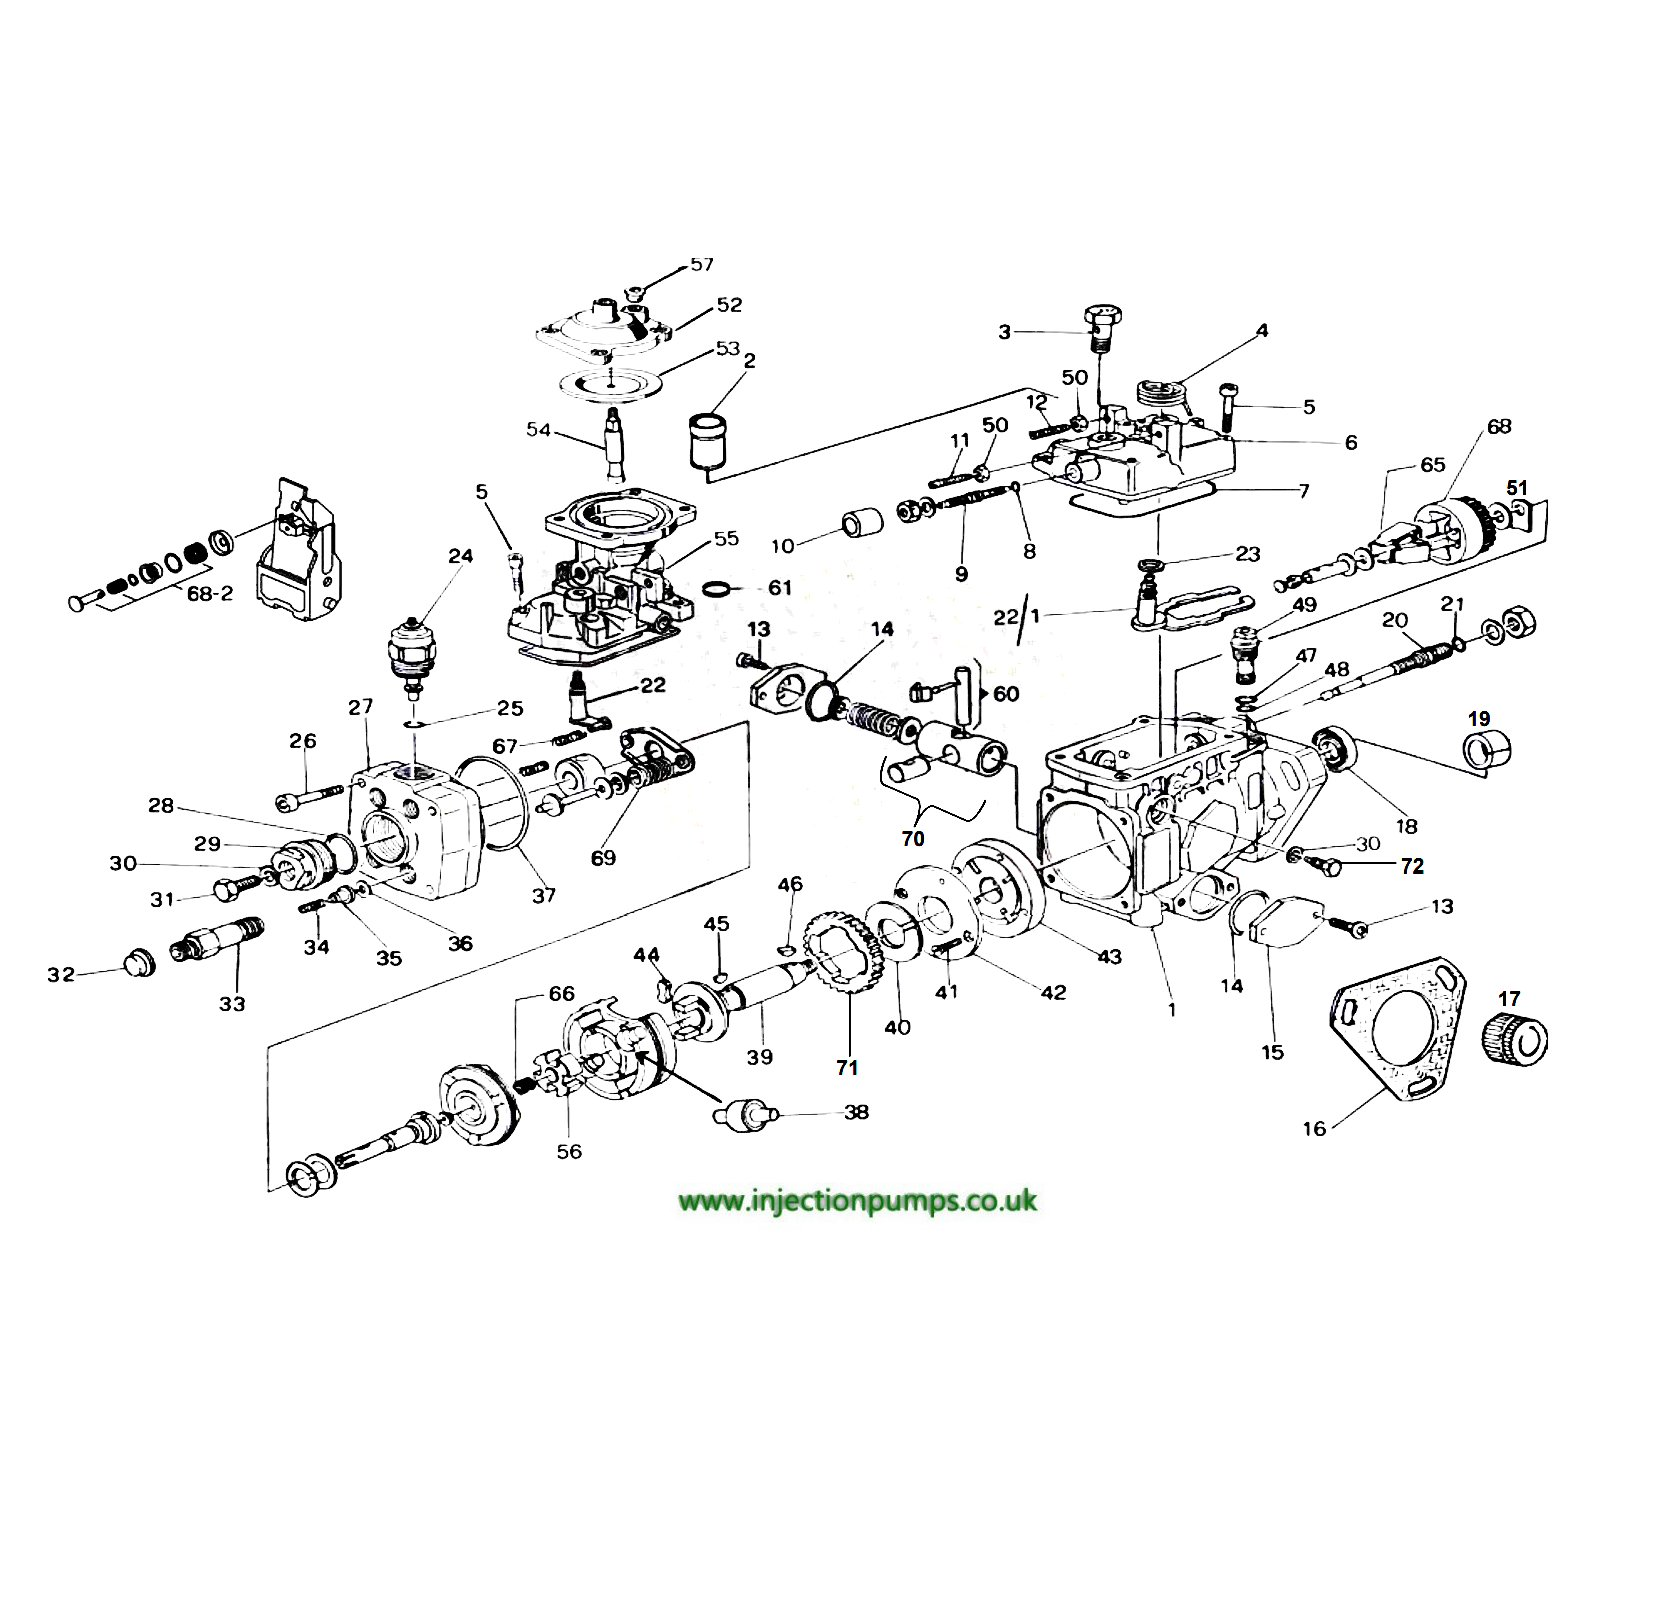 hight resolution of exploded diagrams diesel injection pumps bosch inline fuel pump diagram bosch fuel pump diagram